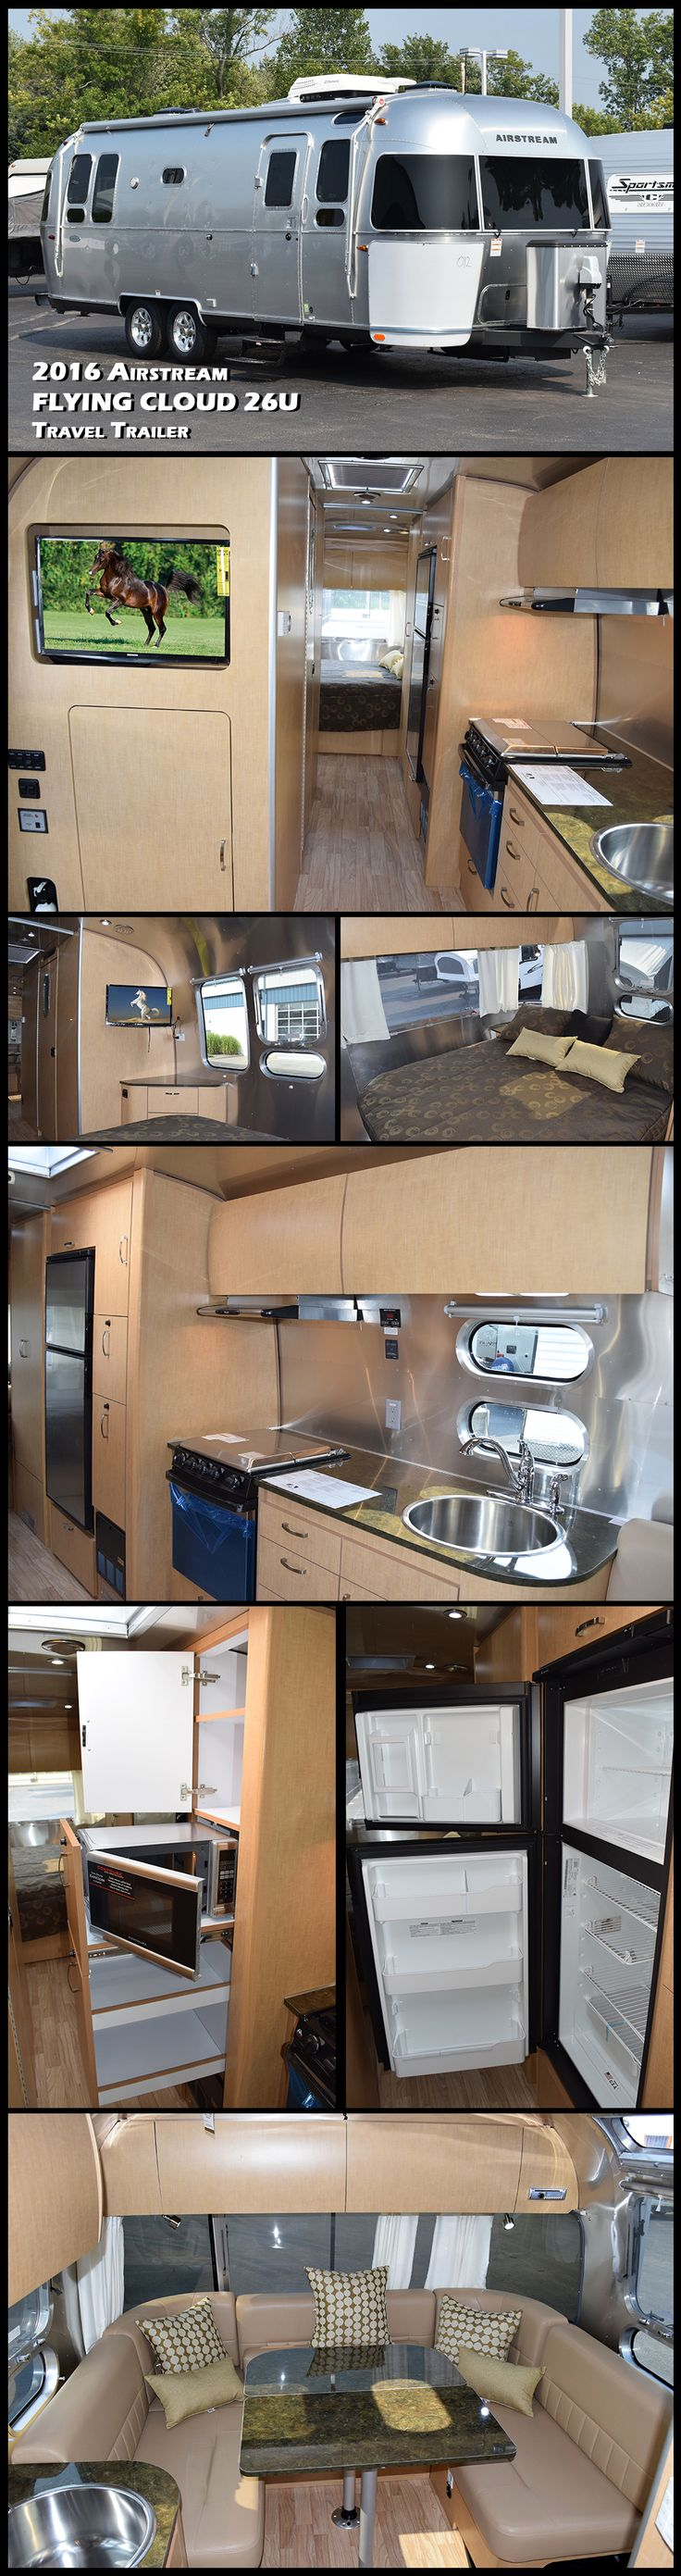 2016 airstream flying cloud 26u travel trailer when it comes to locating an iconic